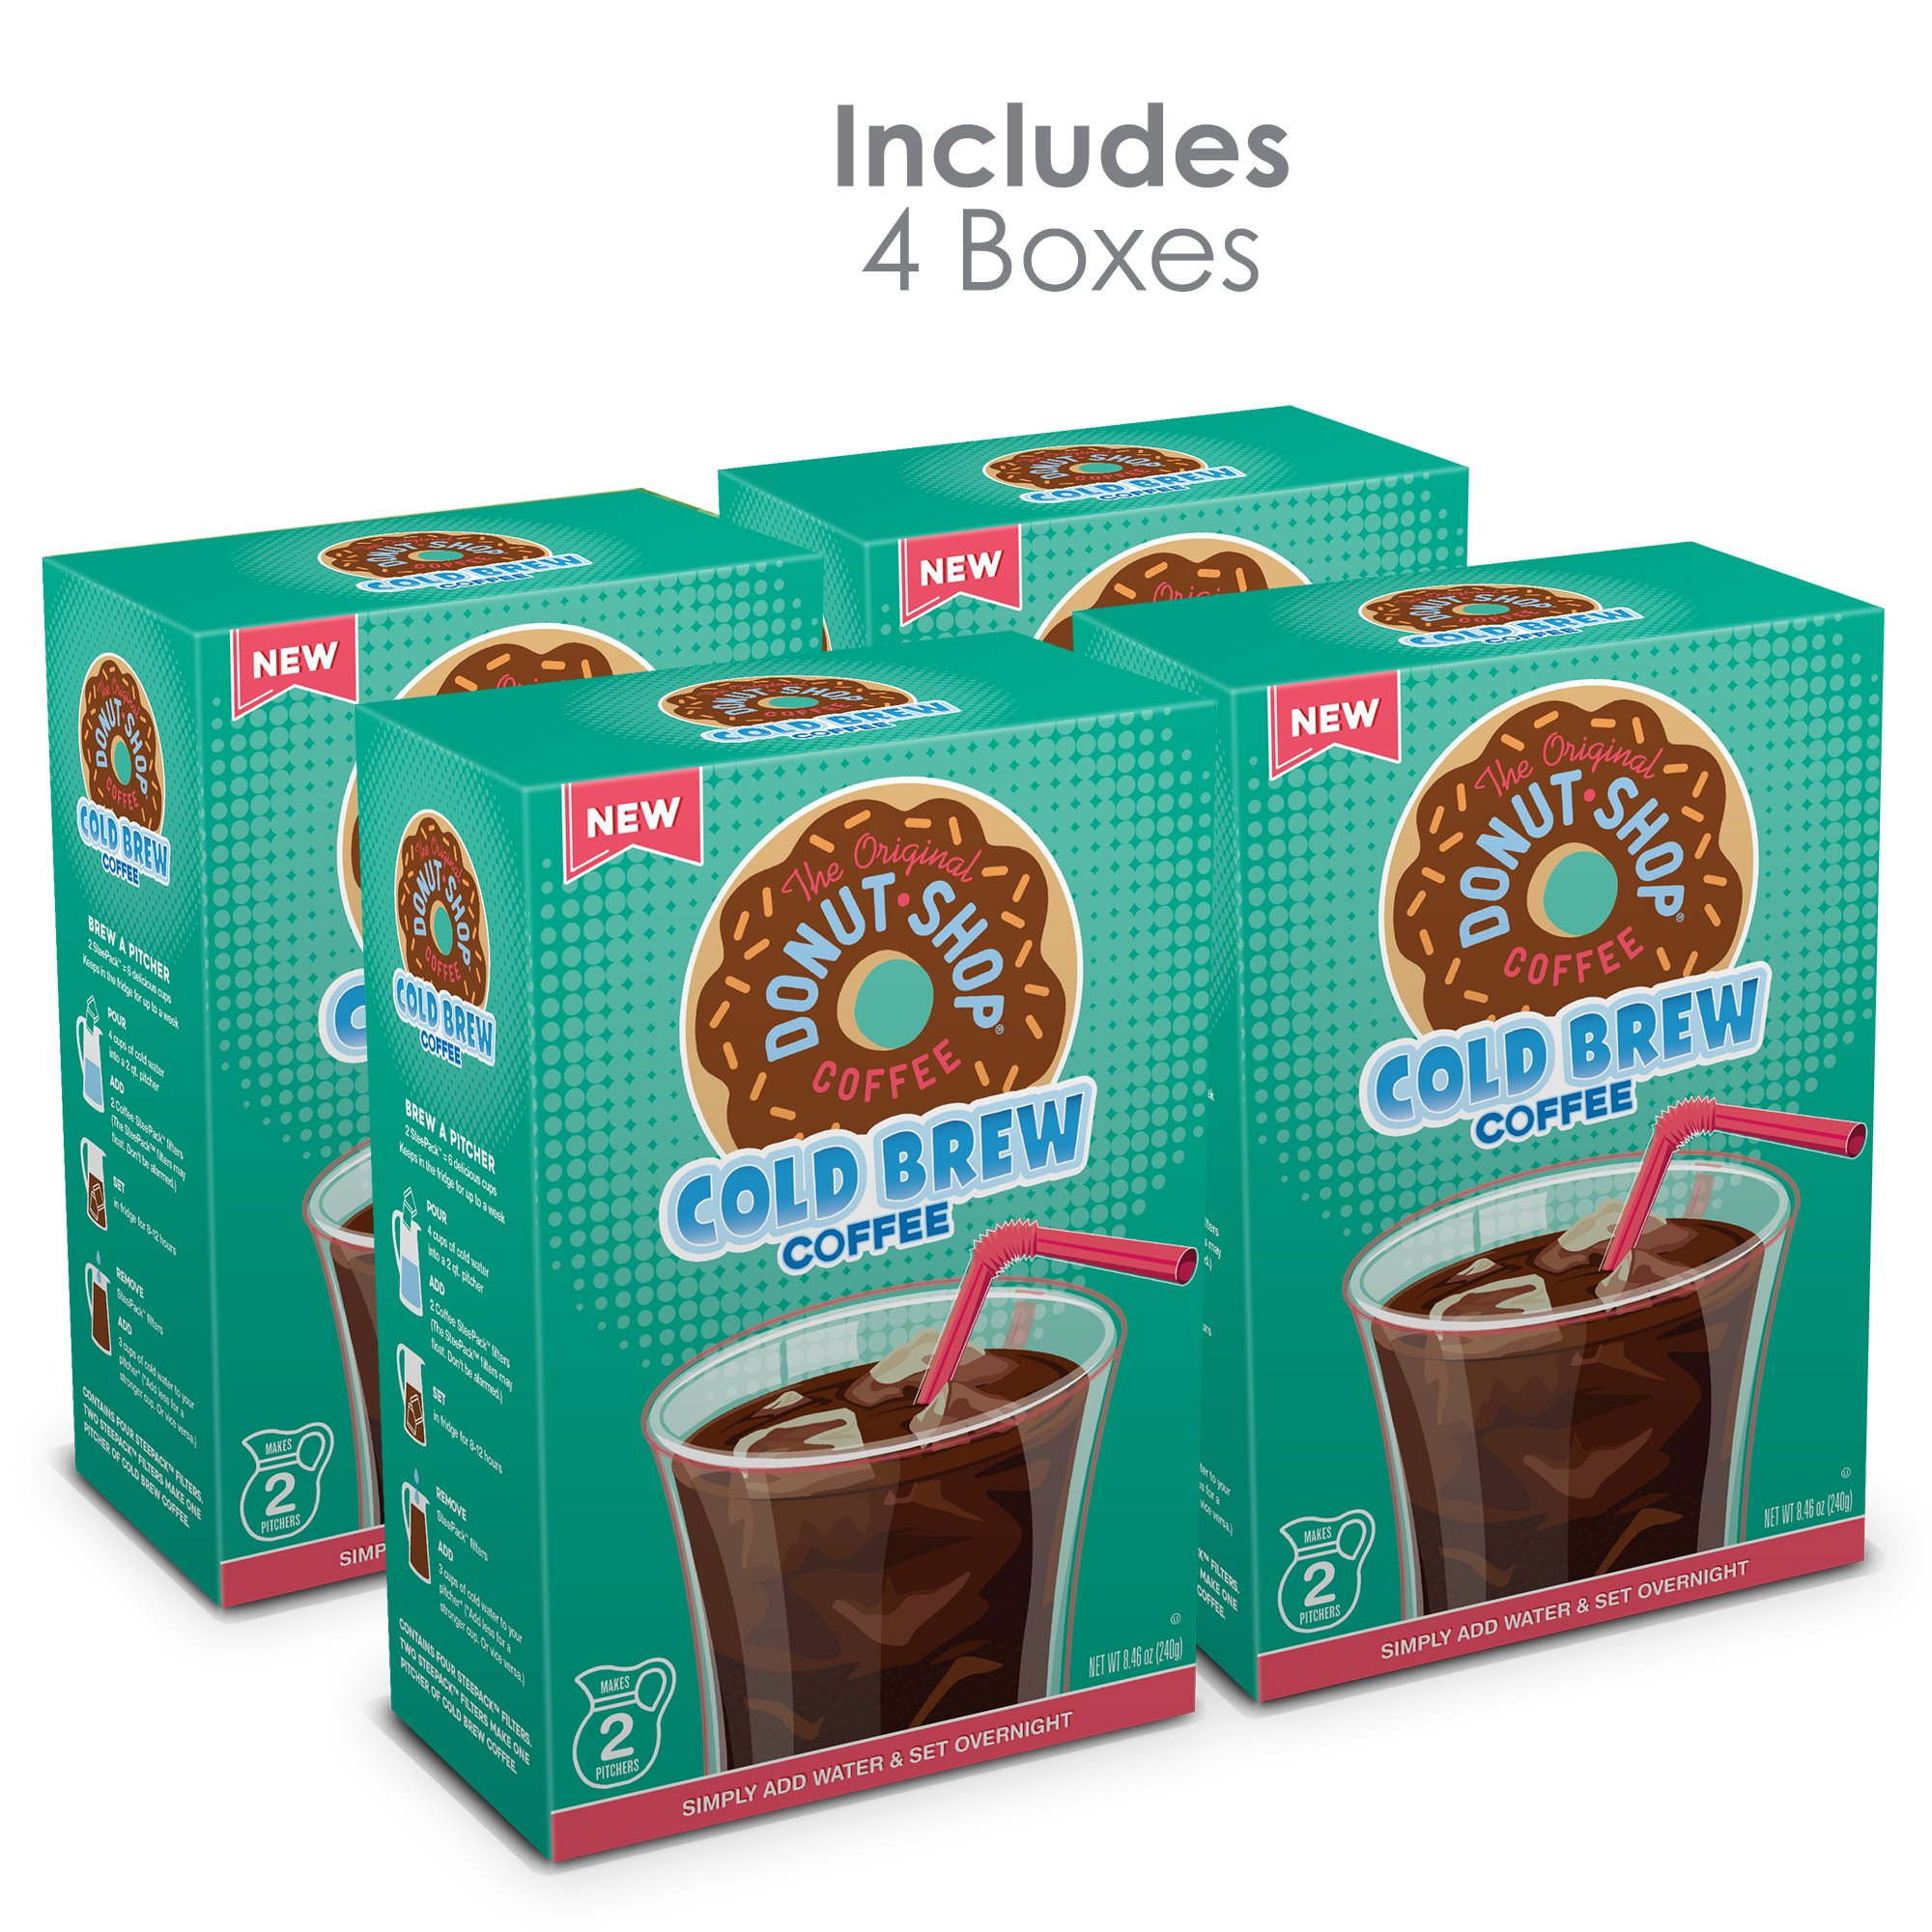 The Original Donut Shop, Cold Brew Coffee, Coarse Ground, Makes 8 - 48oz.  Pitchers of Real Cold Brew Coffee, (4 boxes of 4 filters total of 16 SteePack Filters) by The Original Donut Shop